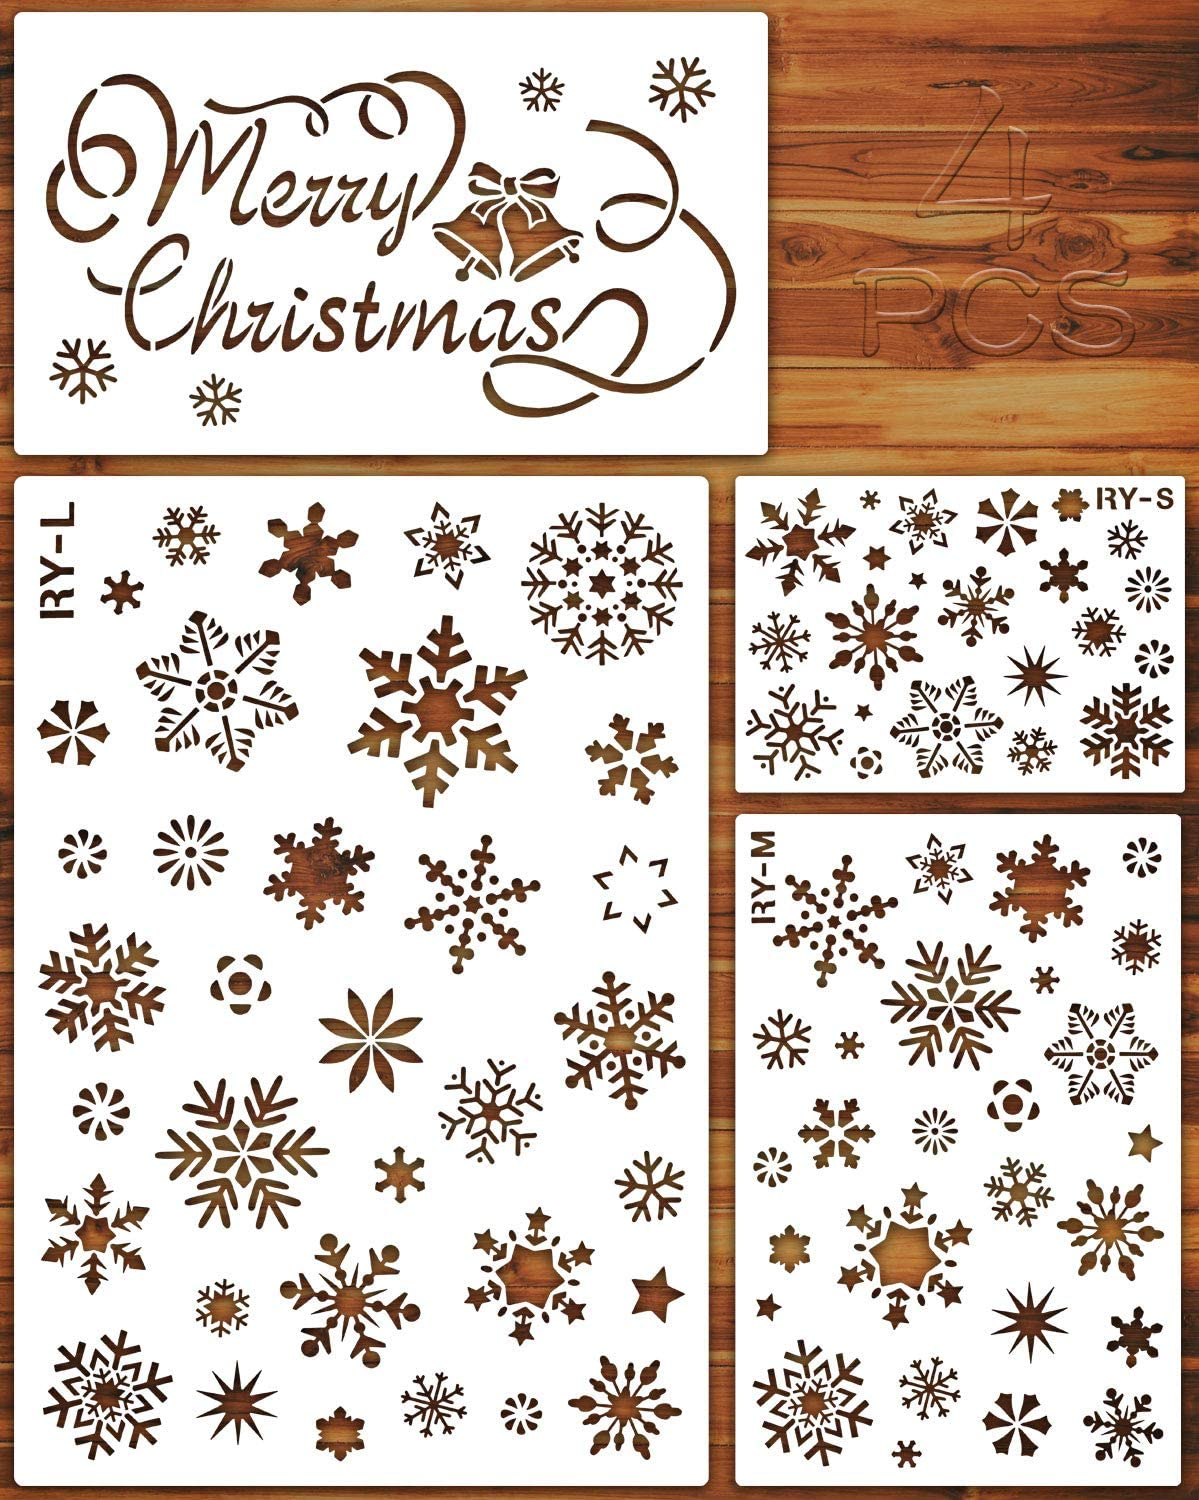 Konsait Large Christmas Snowflake Stencil Template,Reusable Plastic Painting DIY Crafts Templates,Xmas Snowflake Decor for Wood Window Glass Greeting Card,Cookies Cake,Biscuit,Dessert,Coffee Decor